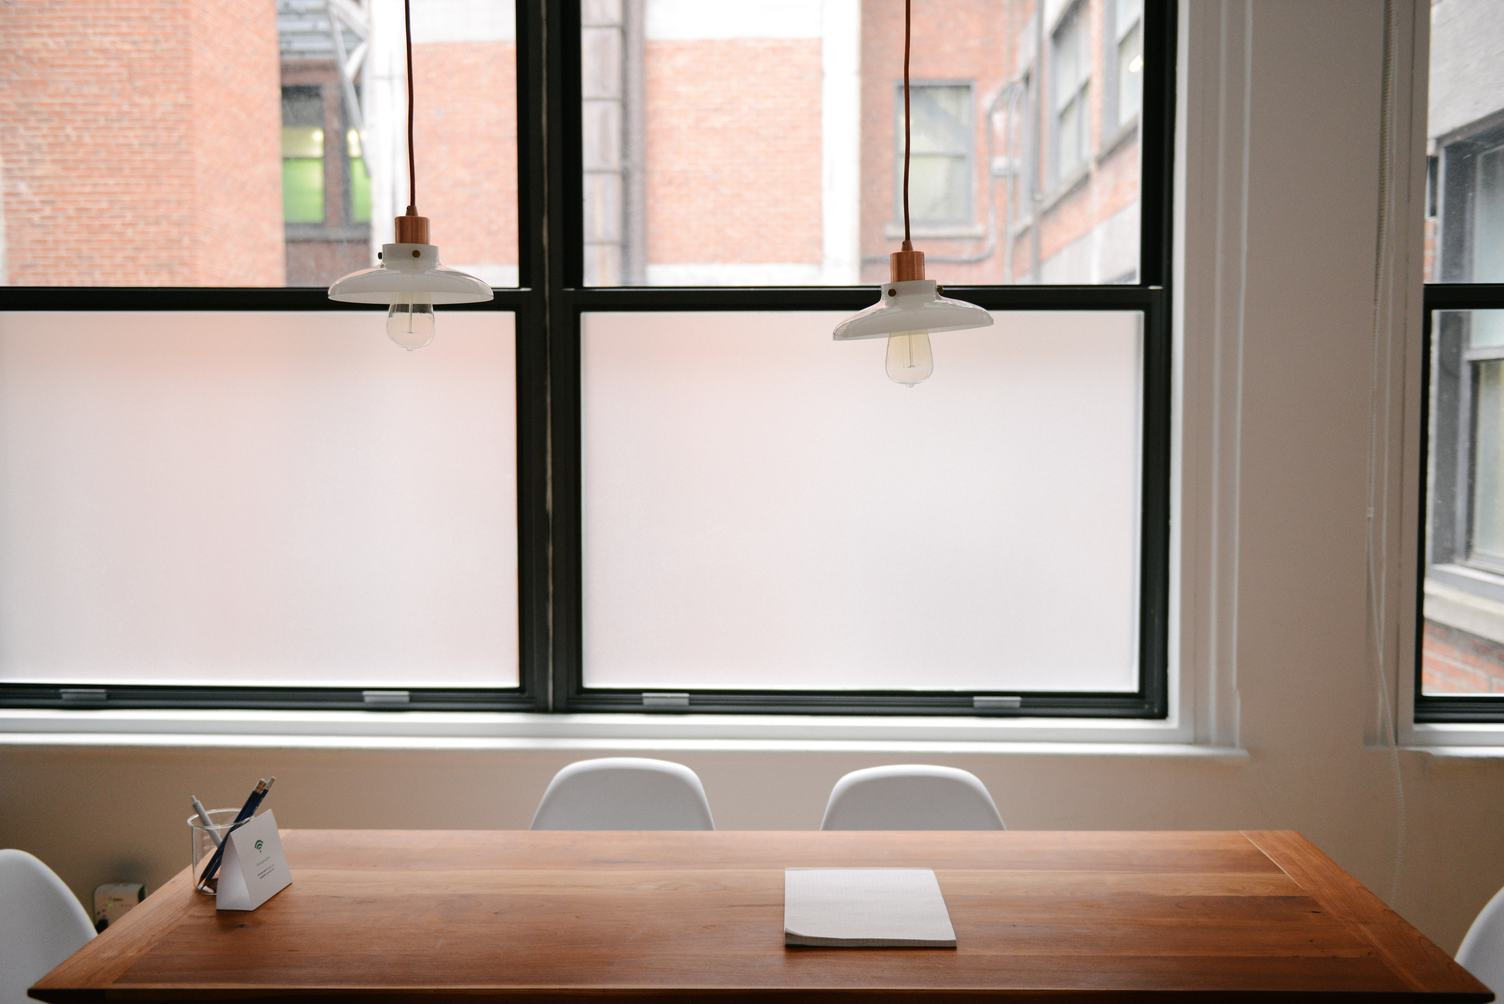 The Wooden Table, Minimalist Style Workspace